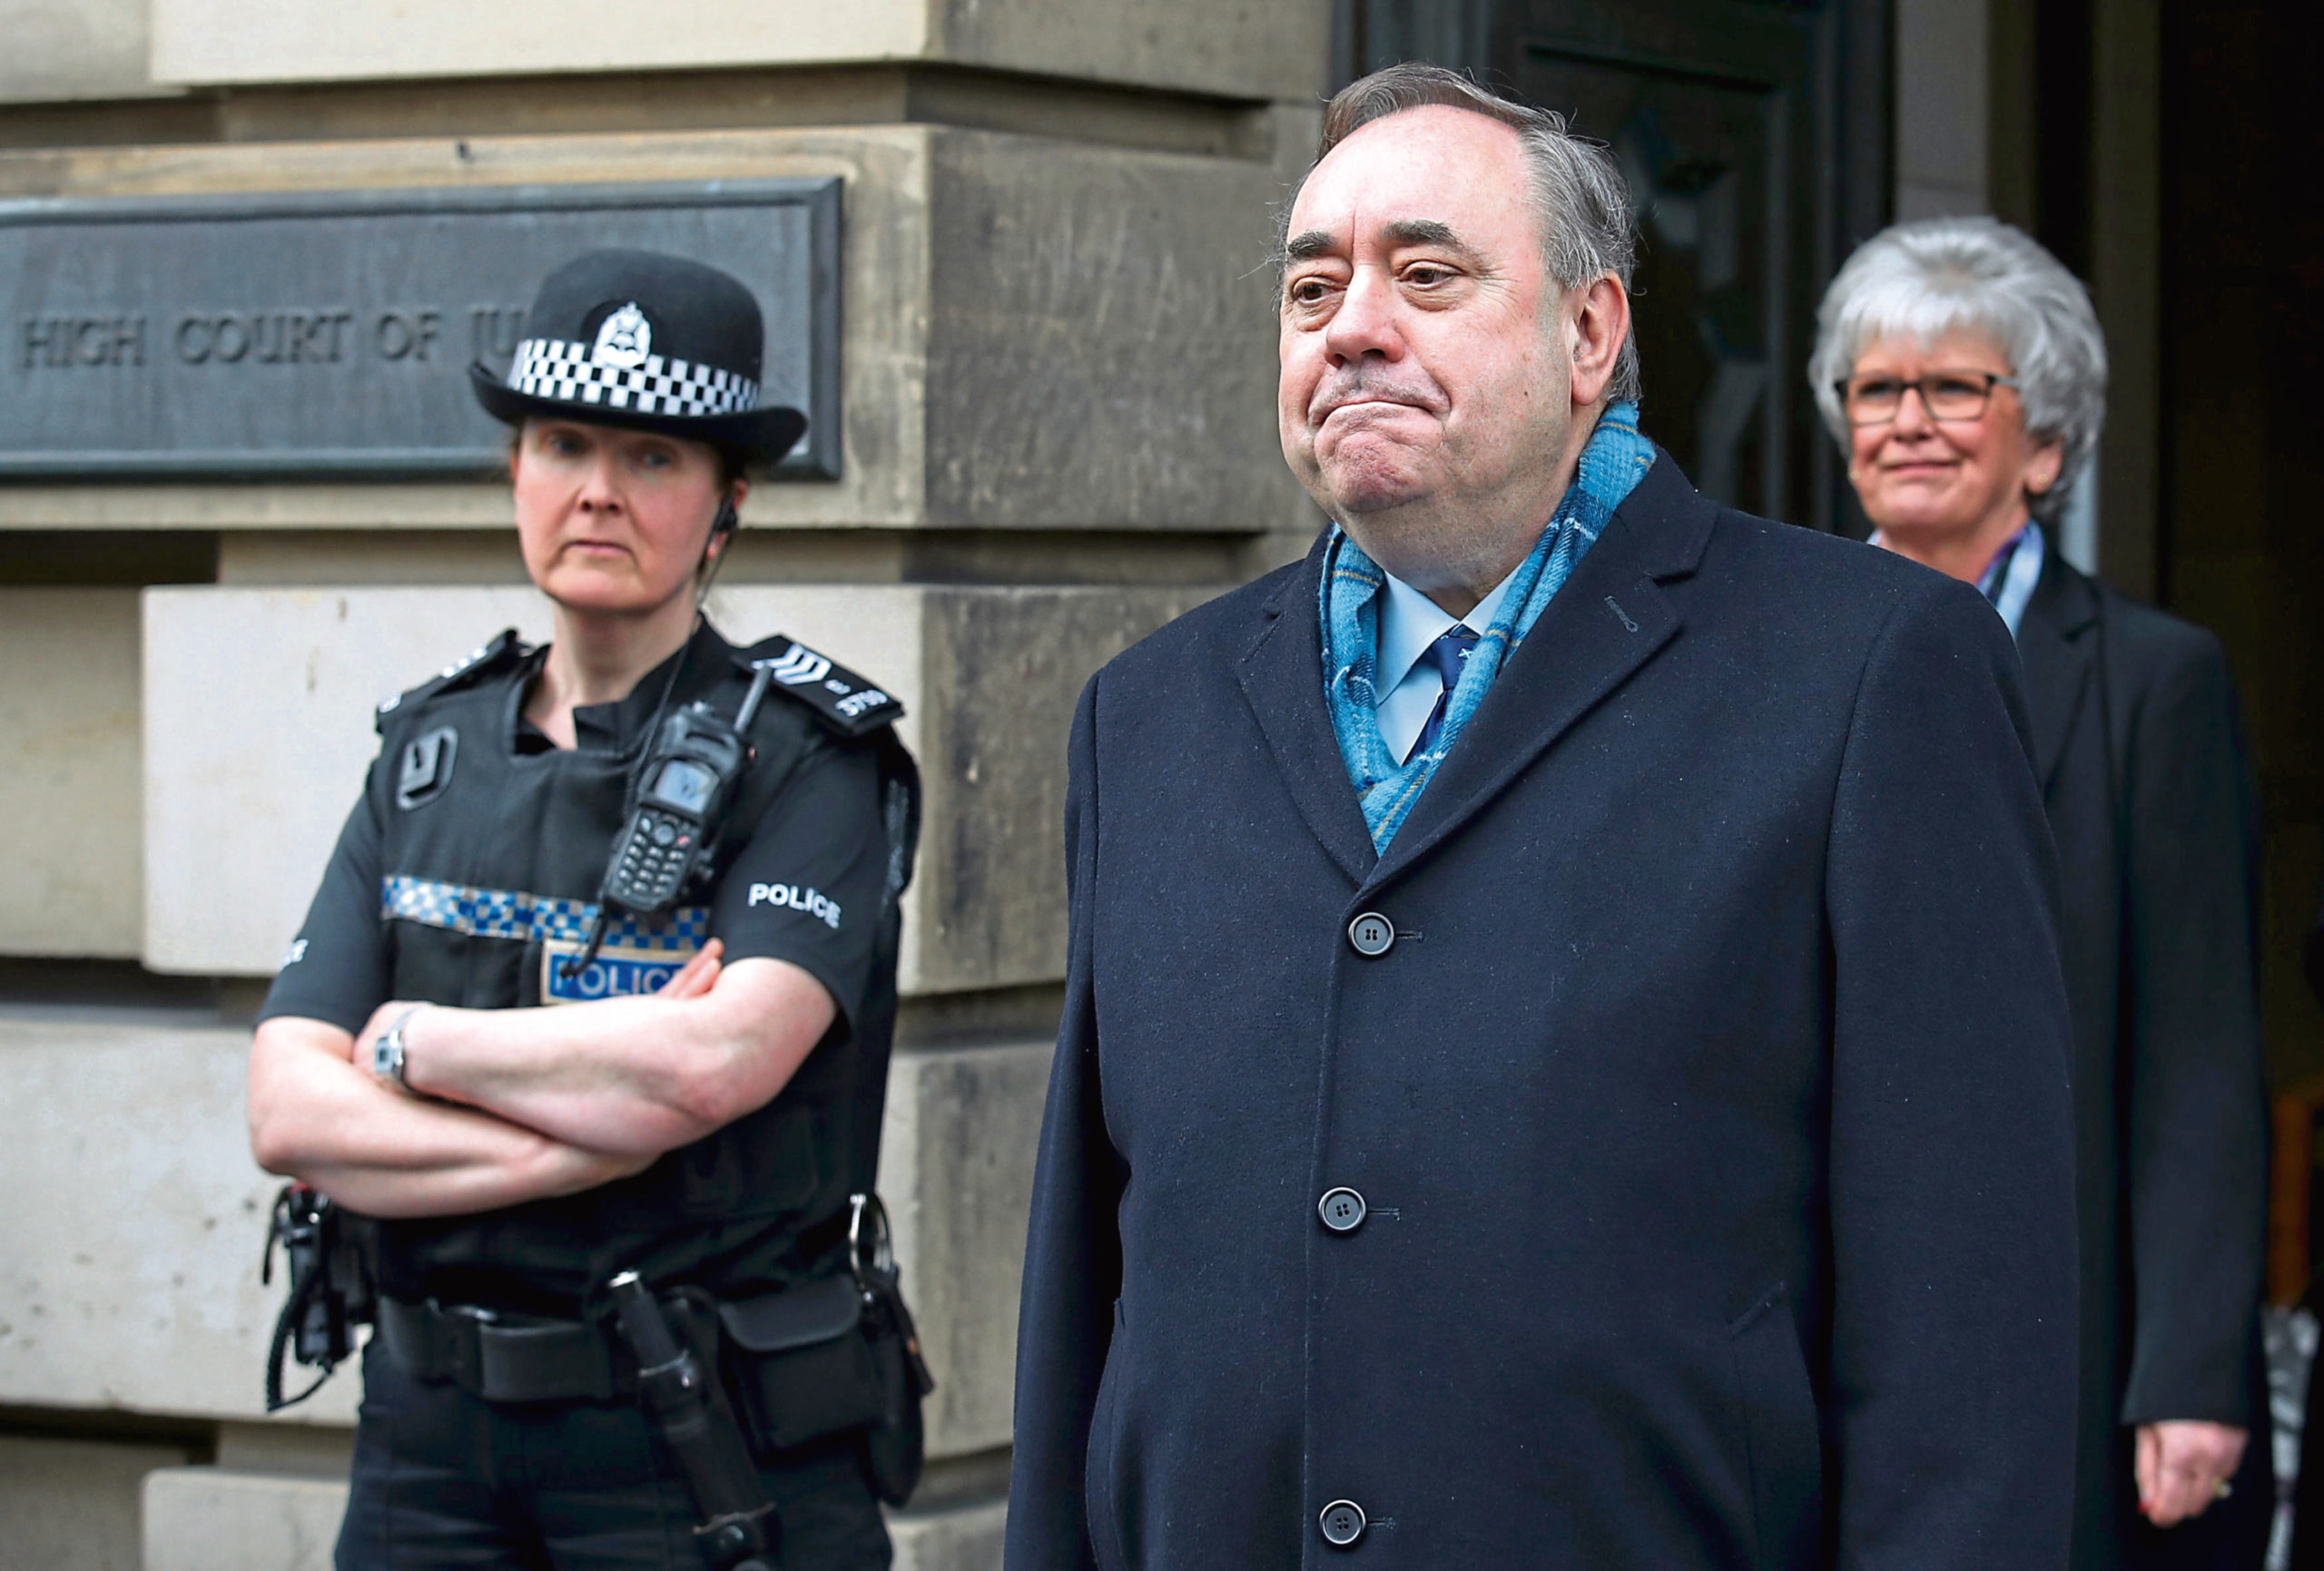 Former SNP leader Alex Salmond was cleared of sexual assault charges